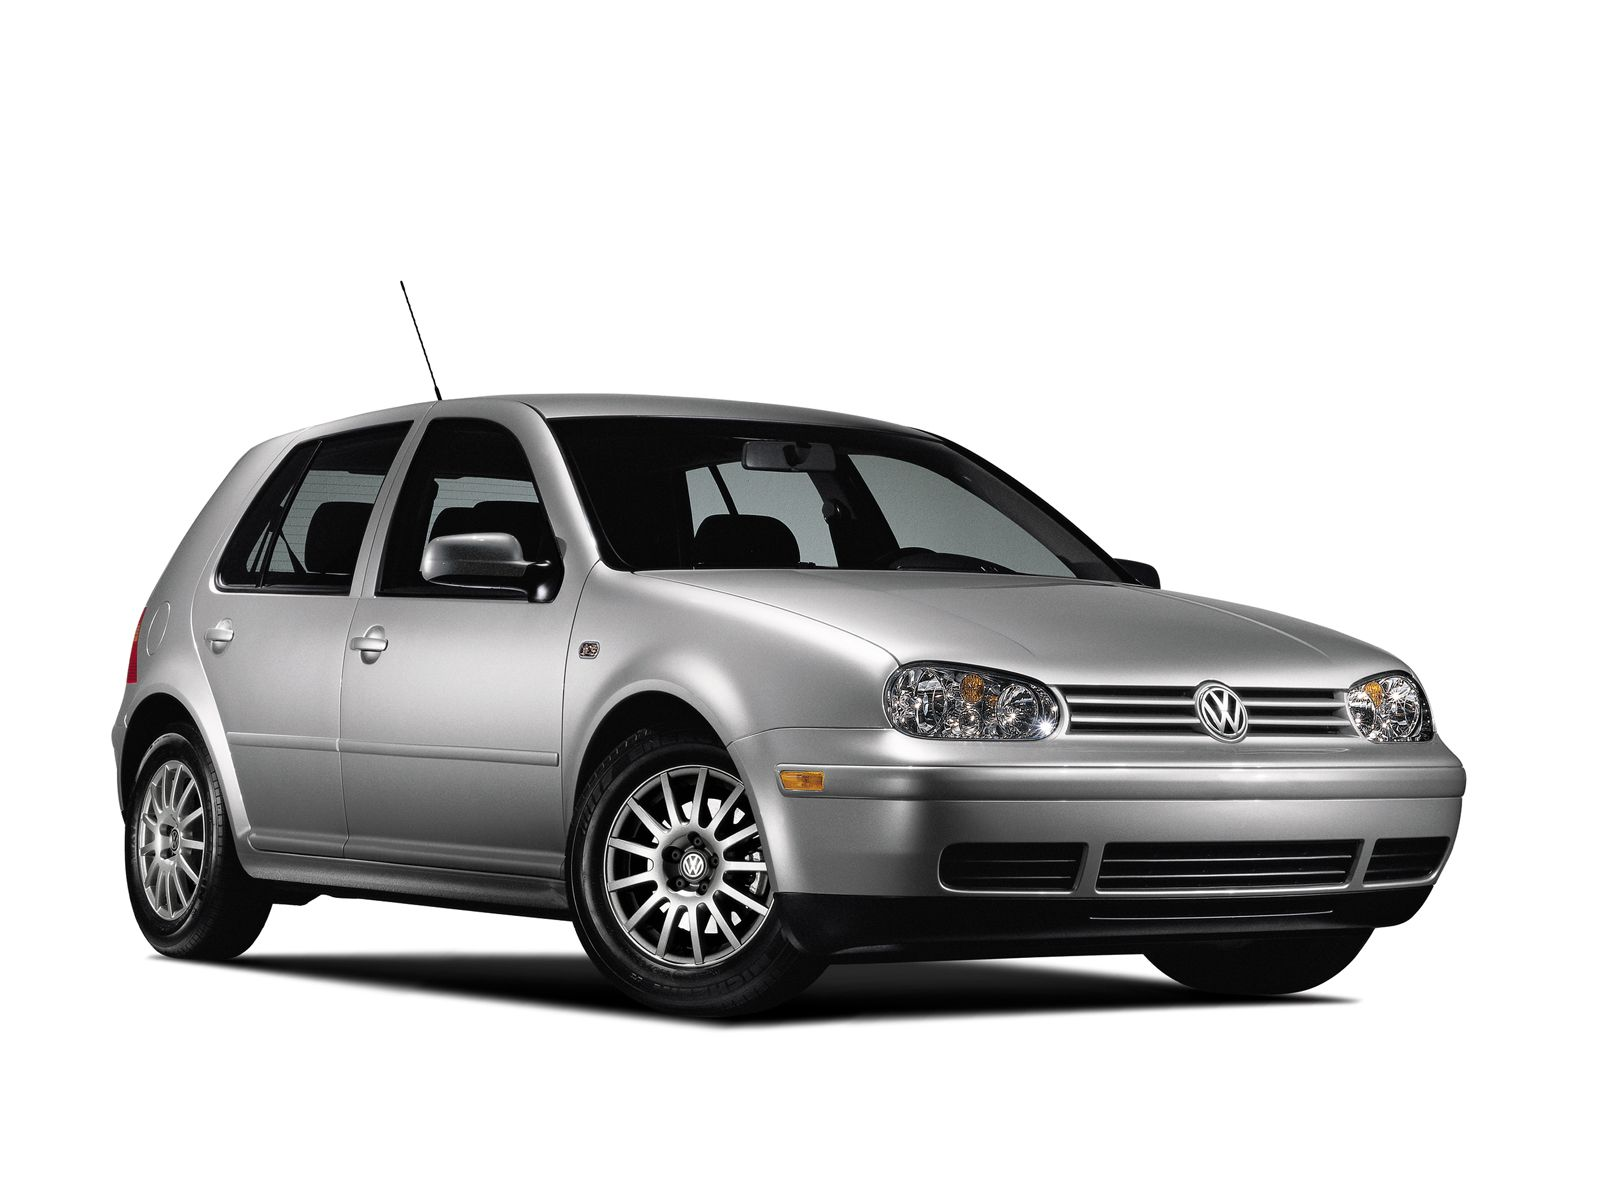 volkswagen golf iv photos photogallery with 107 pics. Black Bedroom Furniture Sets. Home Design Ideas